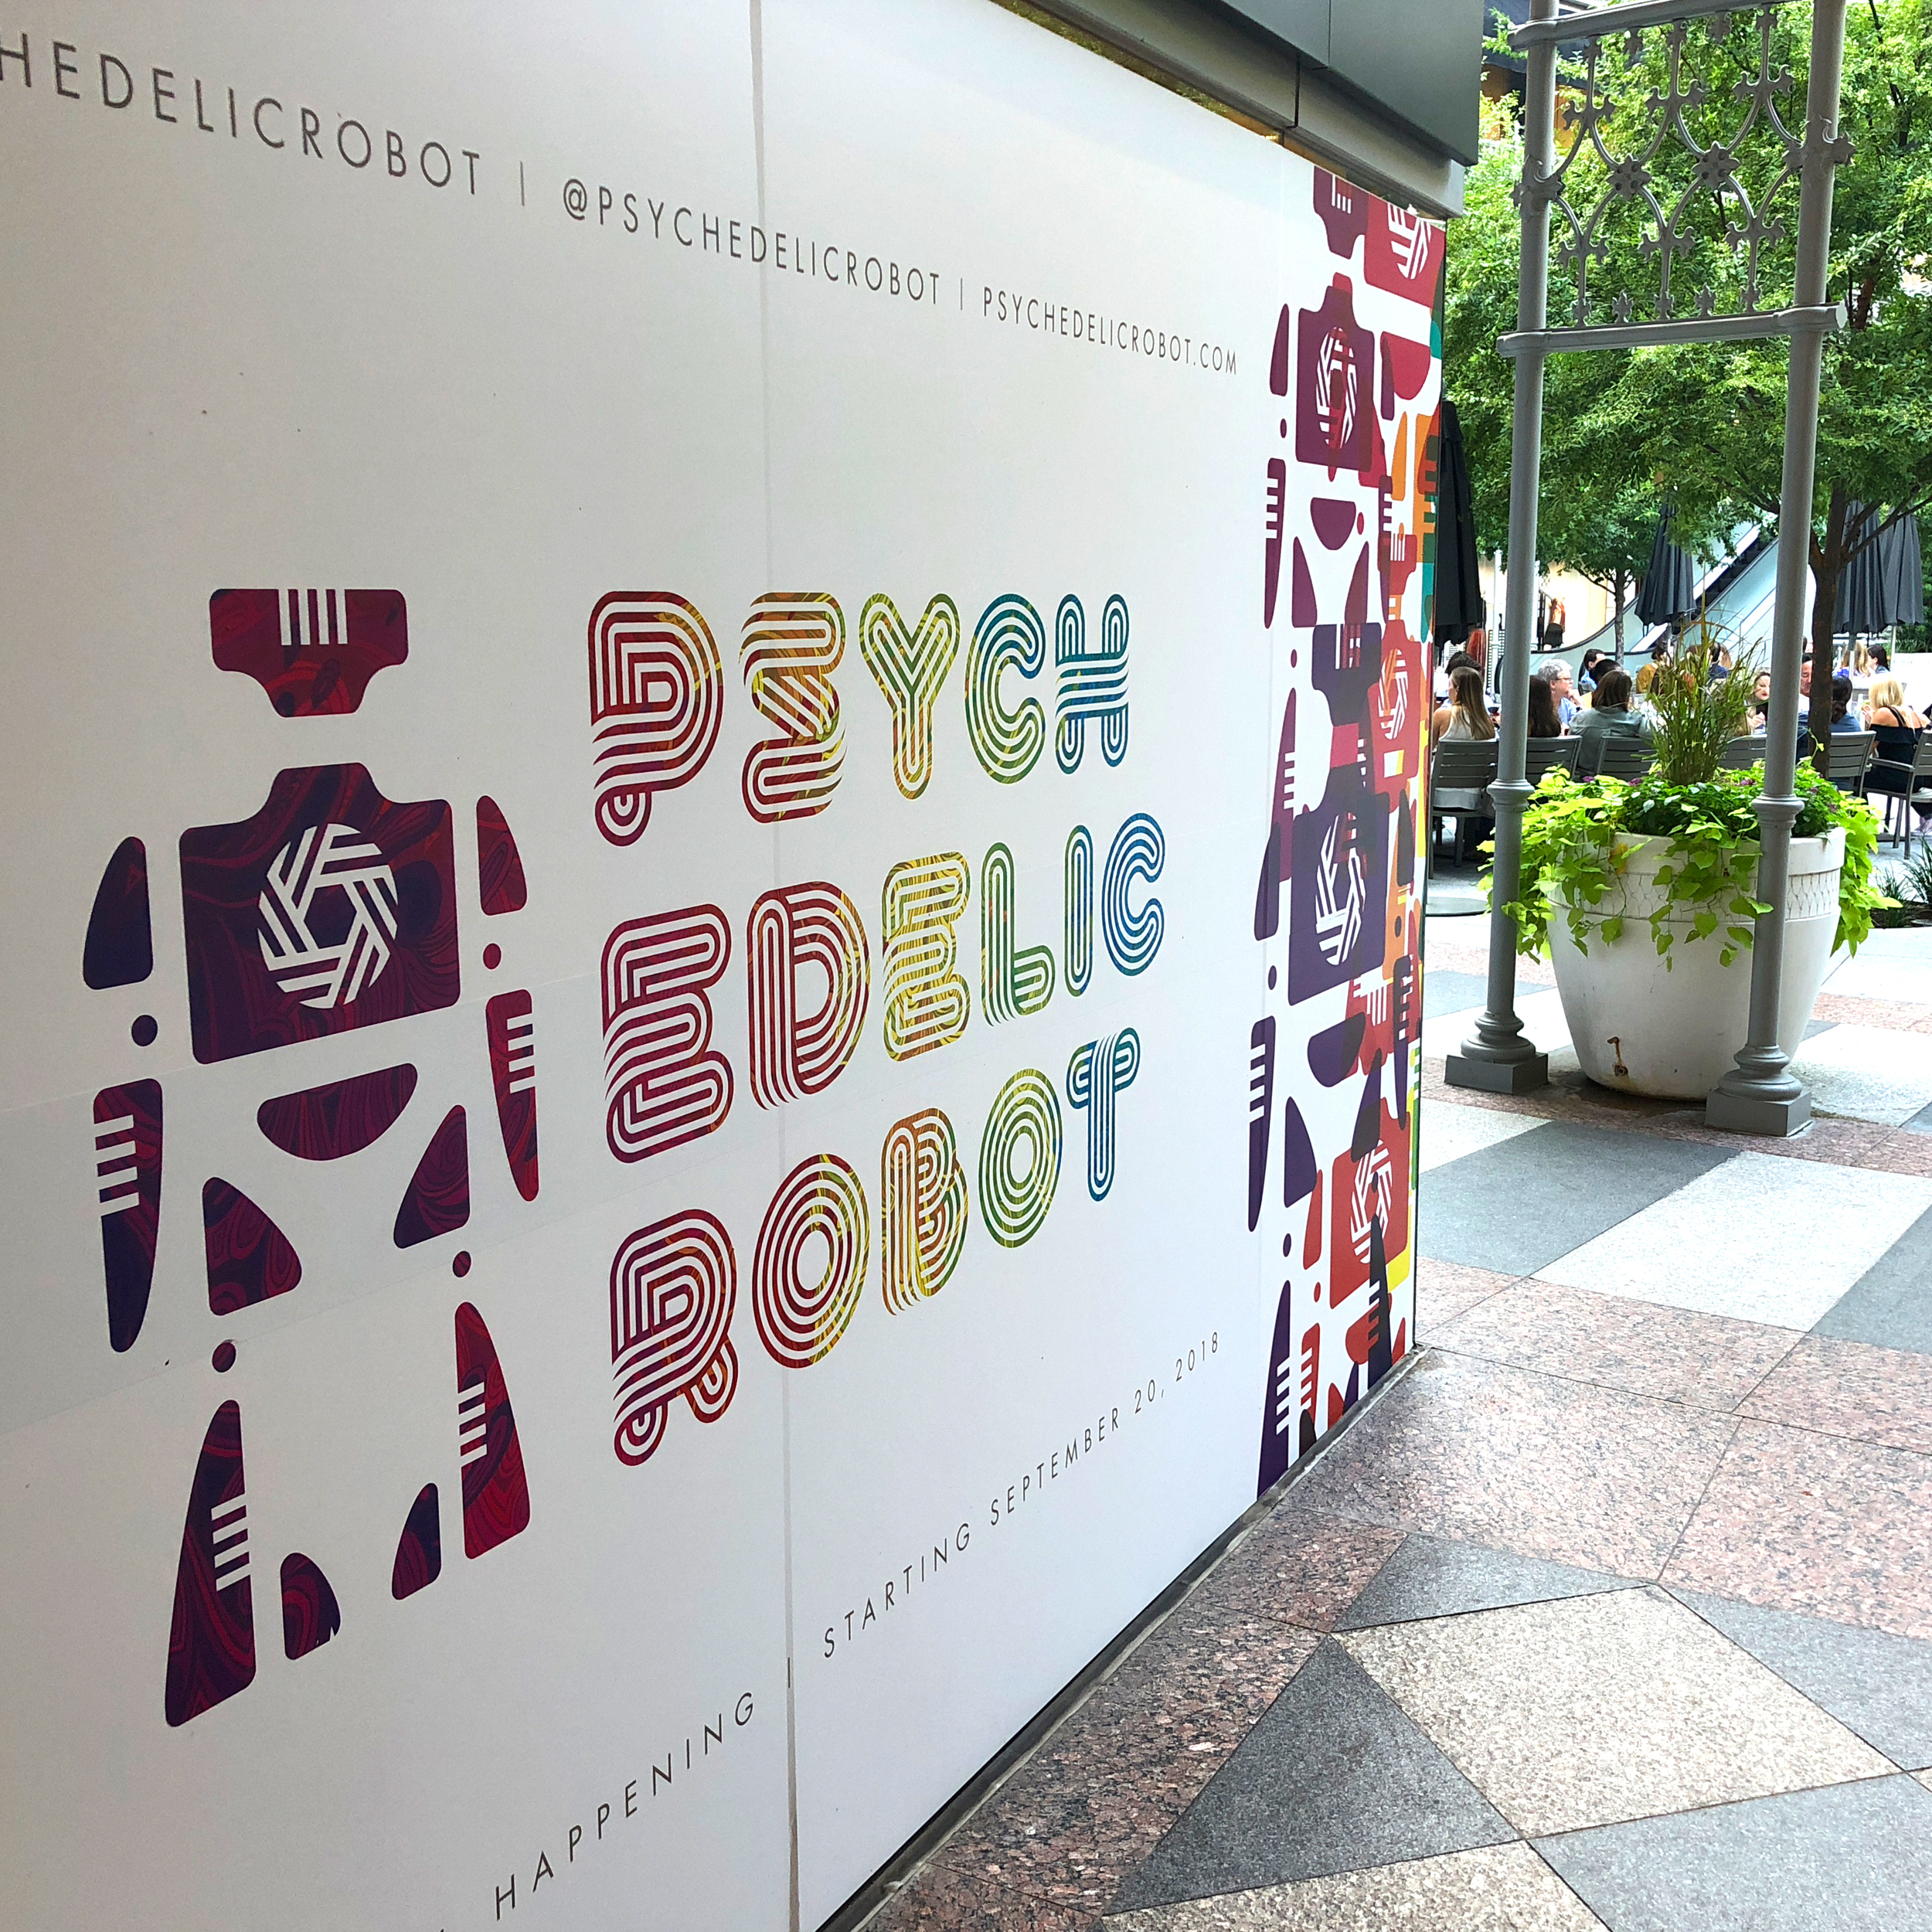 Psychedelic Robot outdoor signage